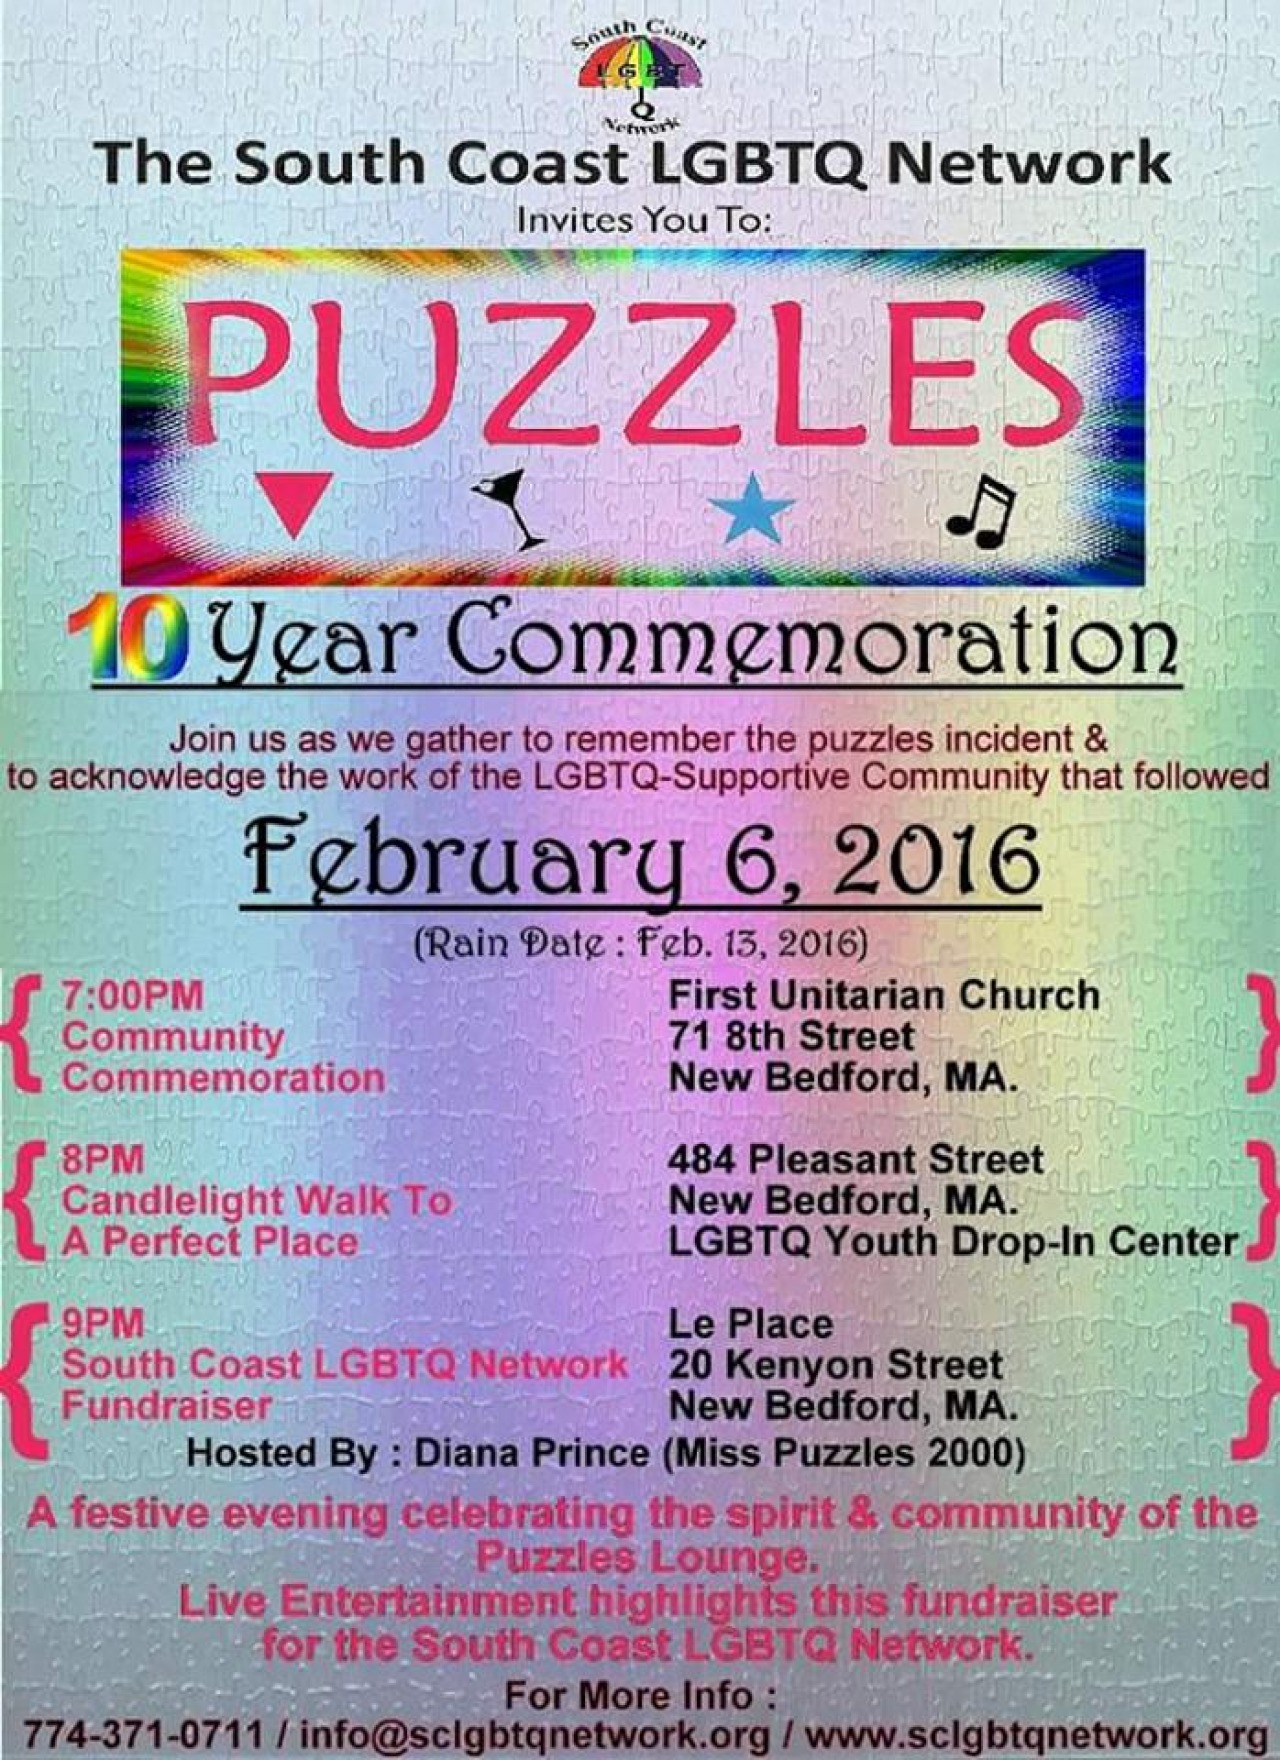 Puzzles Lounge Shooting | Violence Against LGBTQ People of